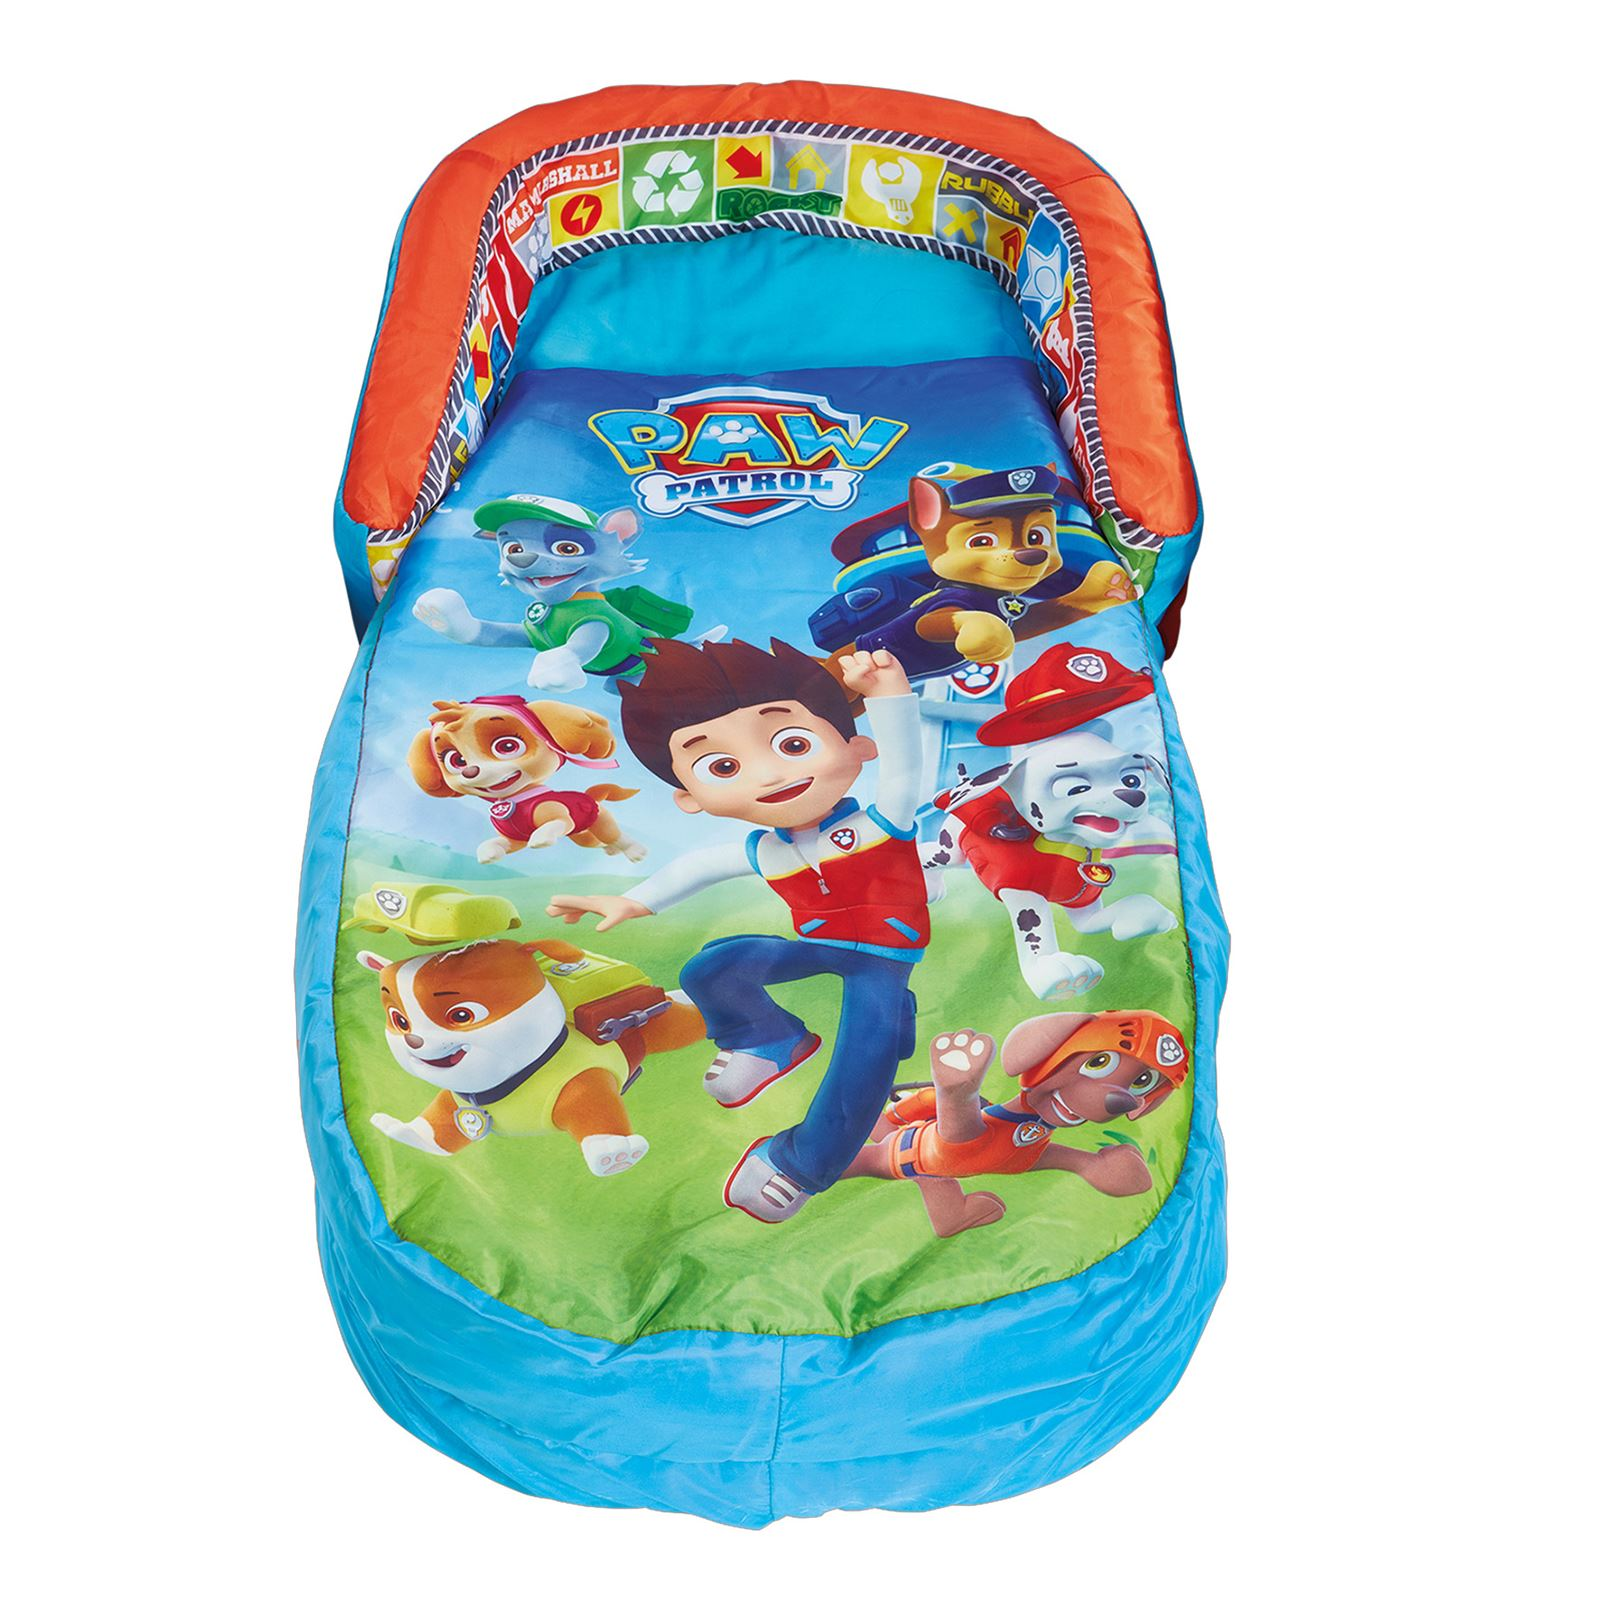 Big W Portable Cot Paw Patrol Kids My First Ready Bed Inflatable Includes